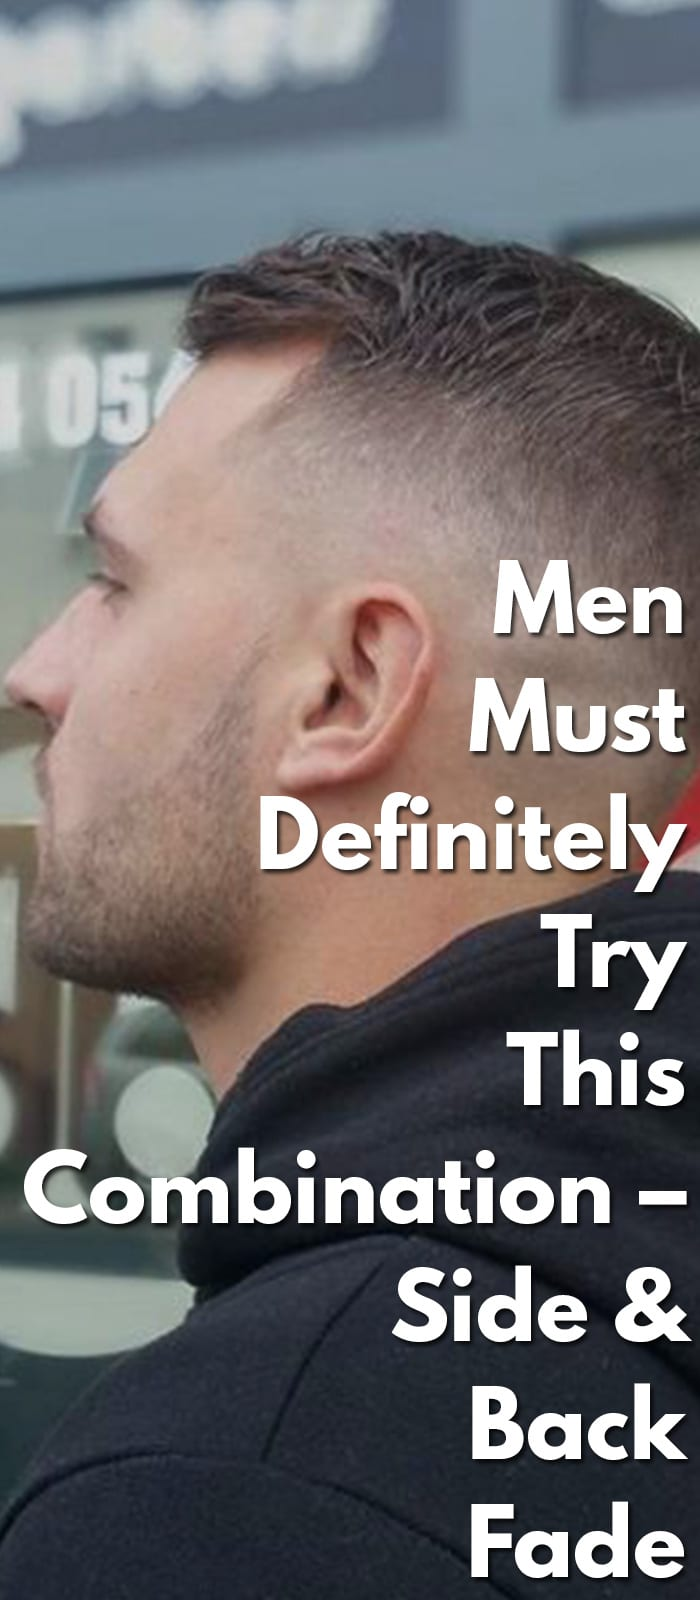 Men-Must-Definitely-Try-This-Combination-–-Side-&-Back-Fade.